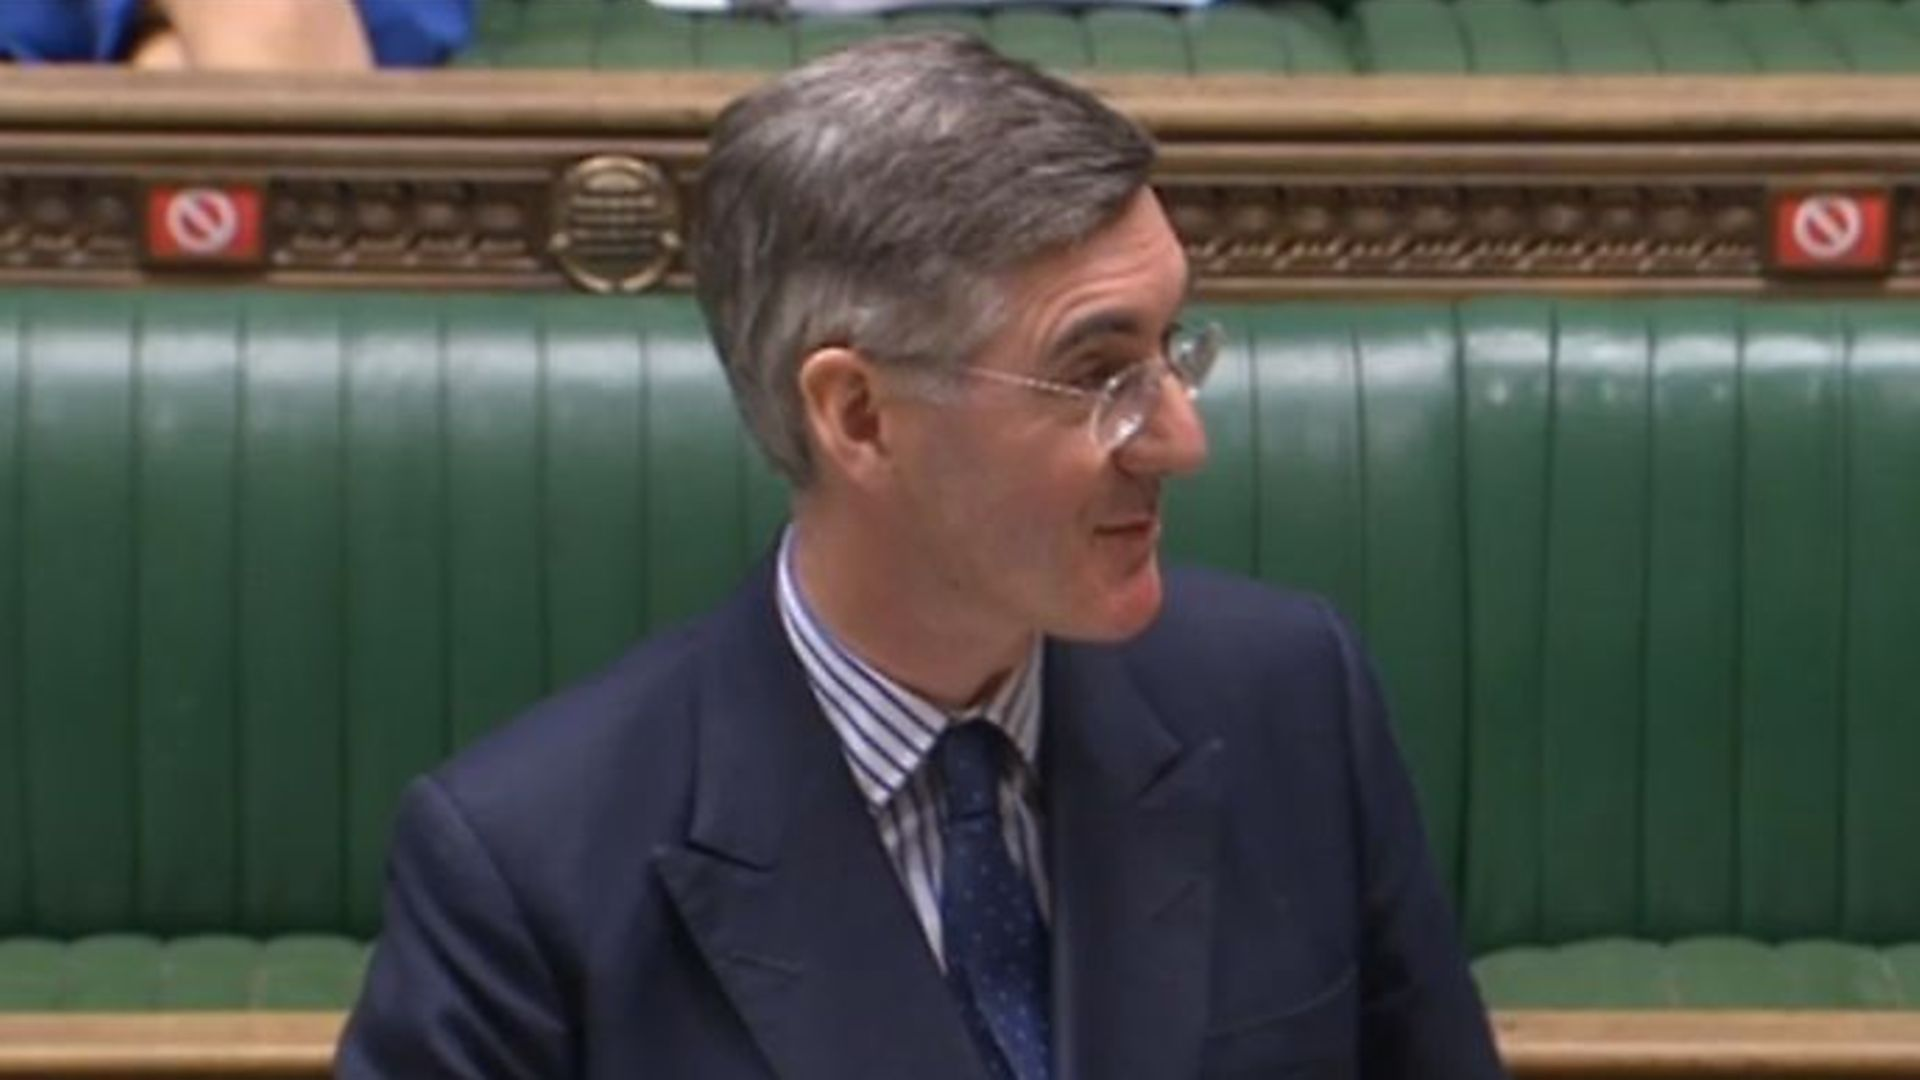 Jacob Rees-Mogg accused the SNP of 'modelling themselves on Oliver Twist' - Credit: Parliamentlive.tv